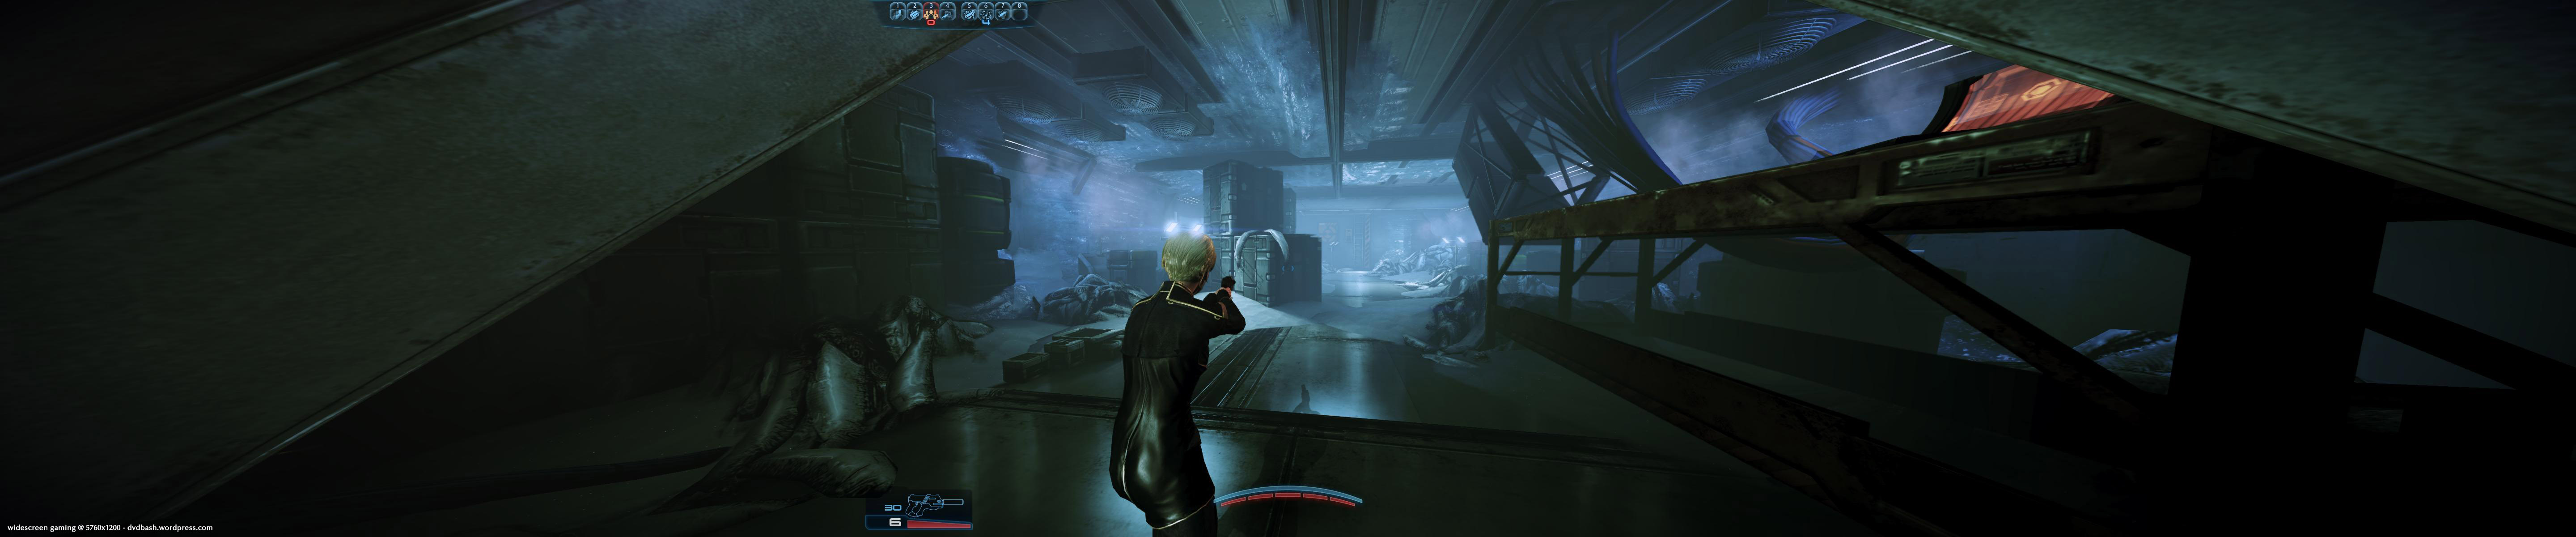 how to delete mass effect 3 dlc